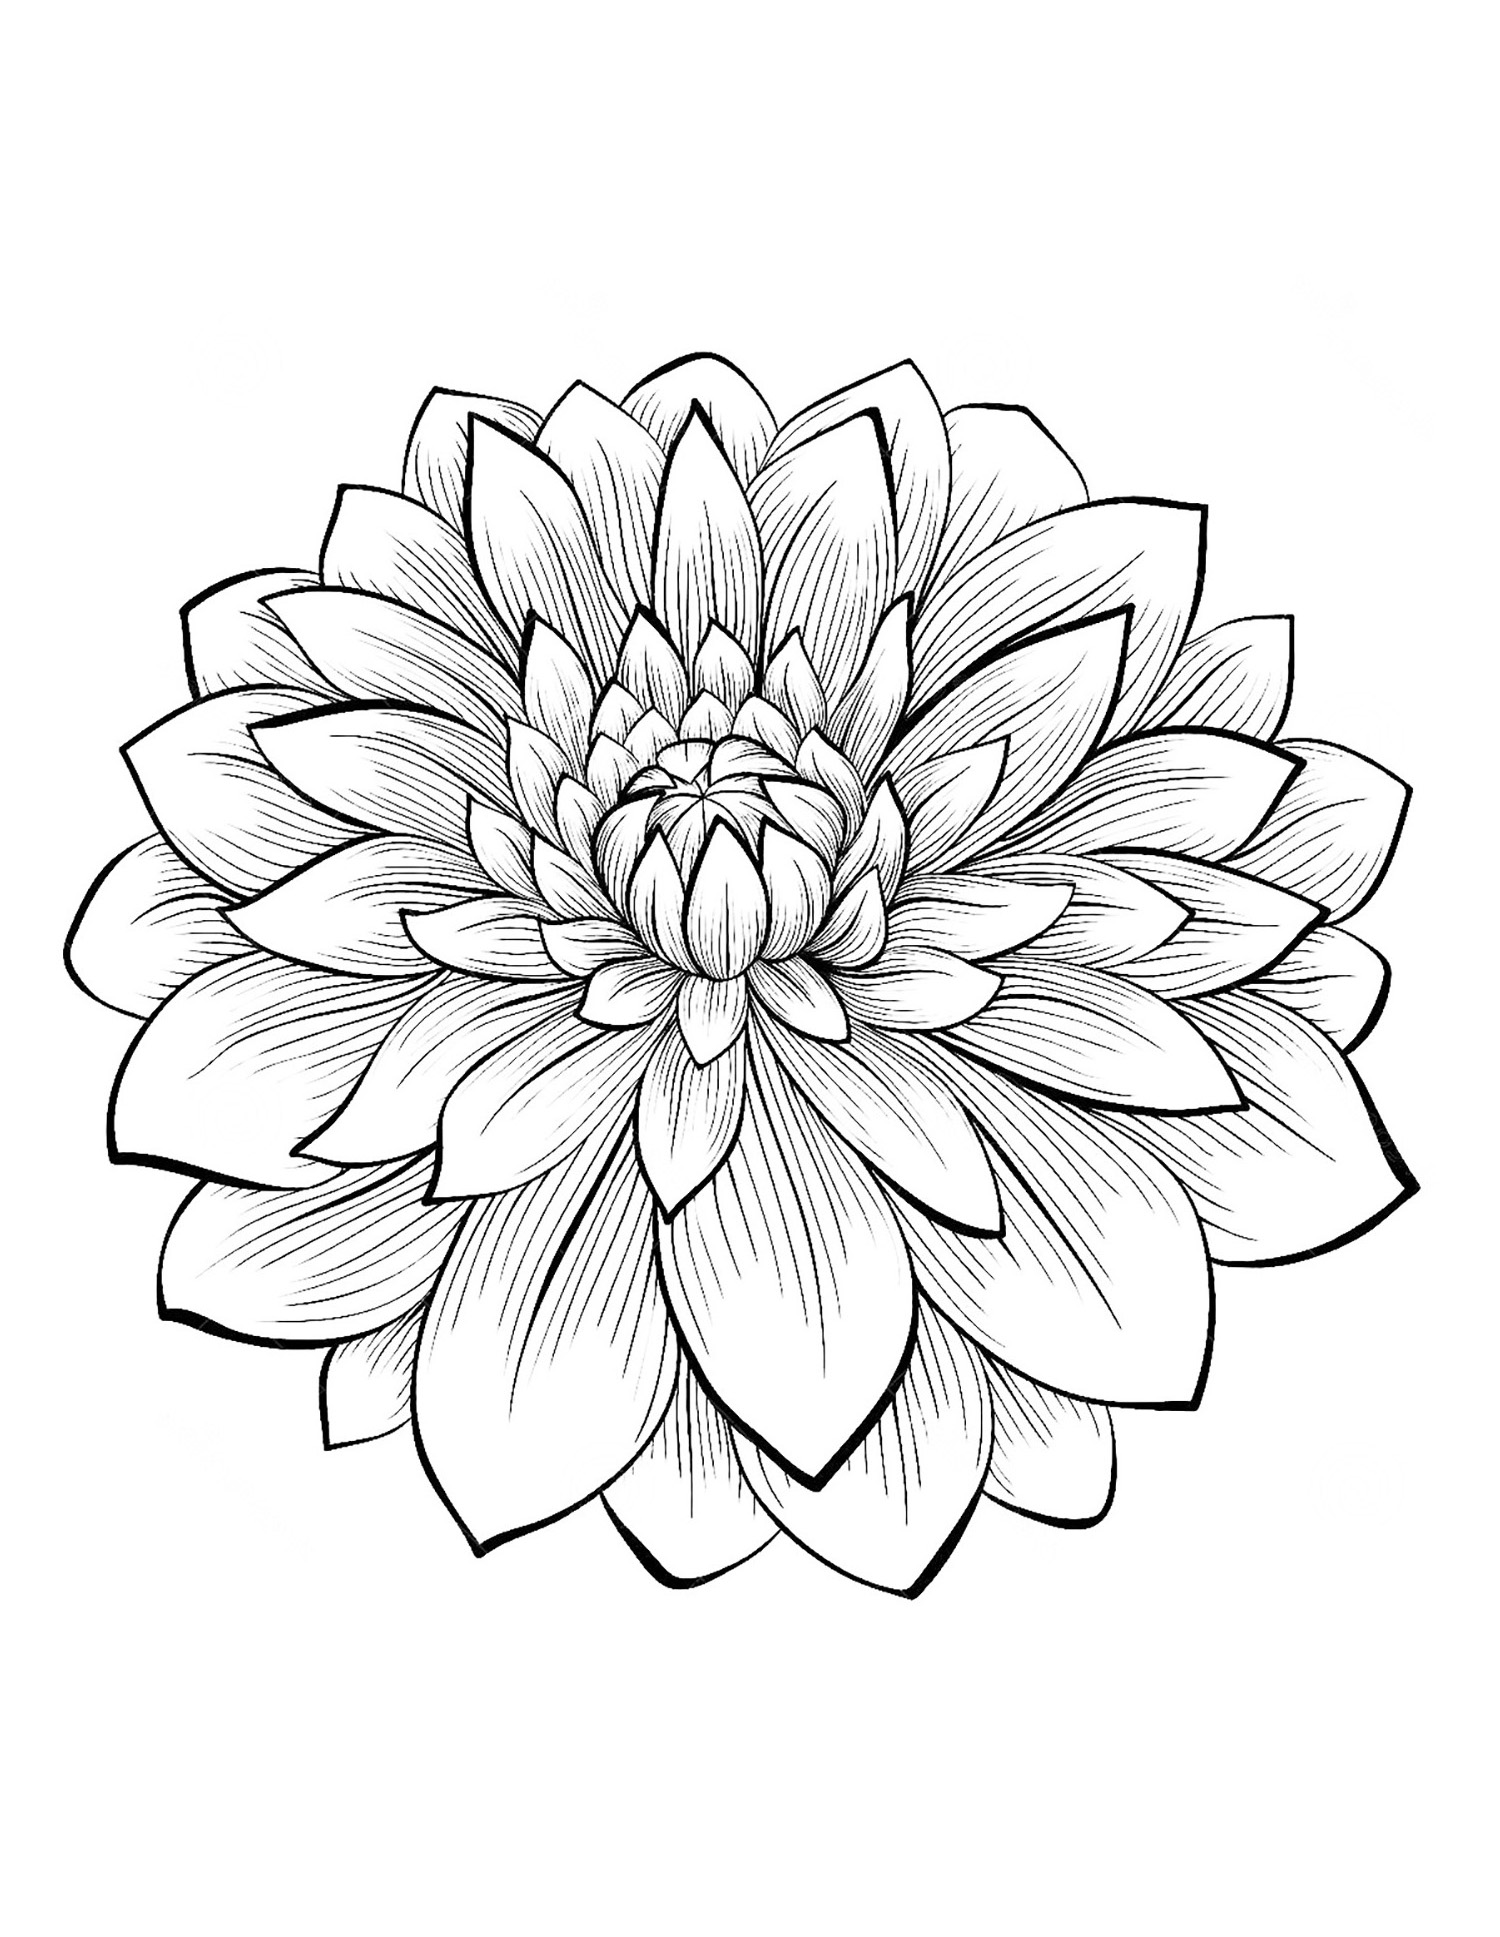 1 dahlias to print color from the gallery flowers and vegetation - Flowers To Print And Color